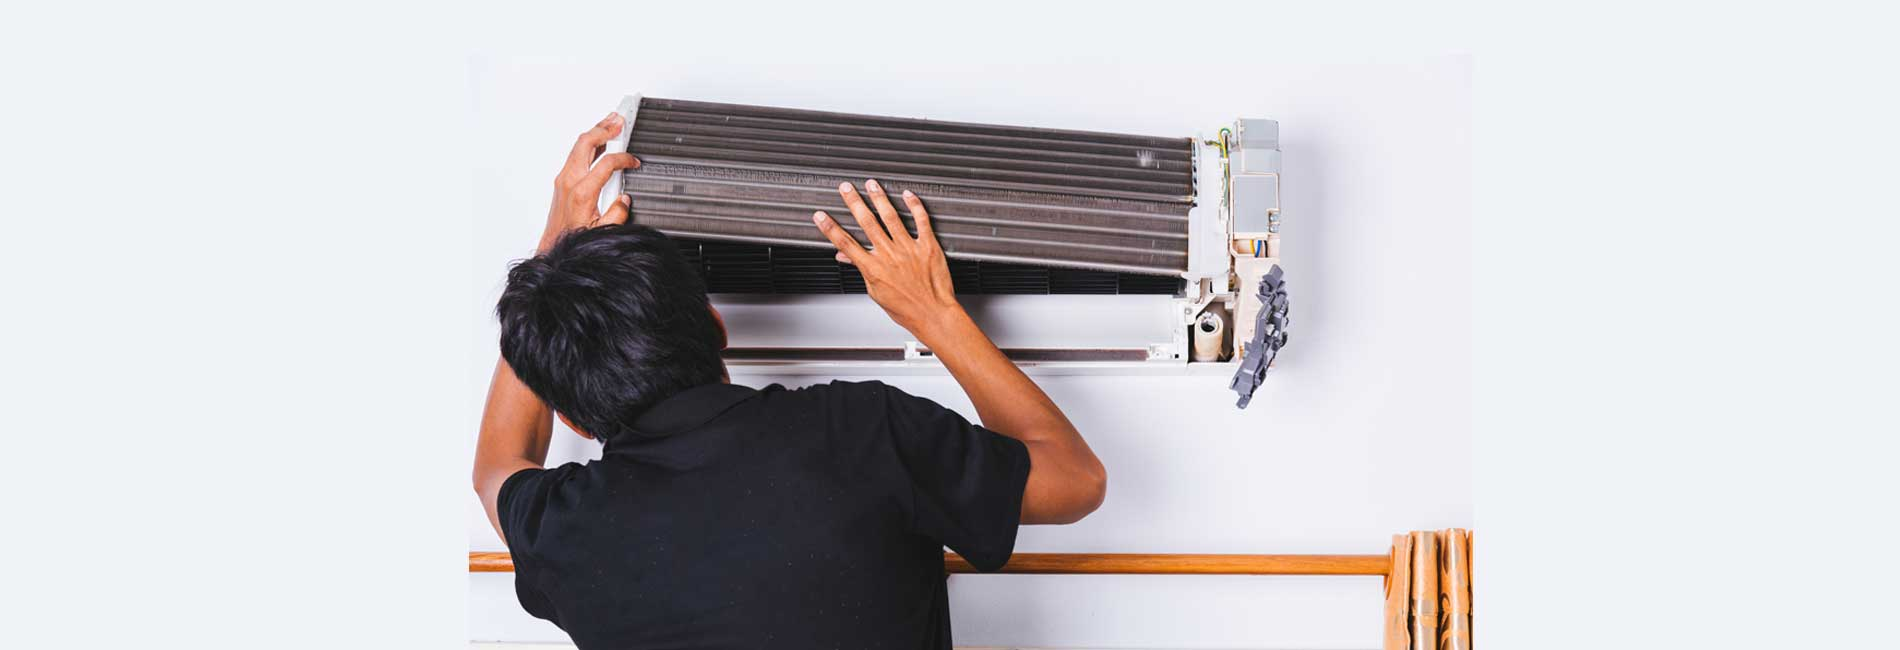 Bluestar Air Condition Service in Ennore